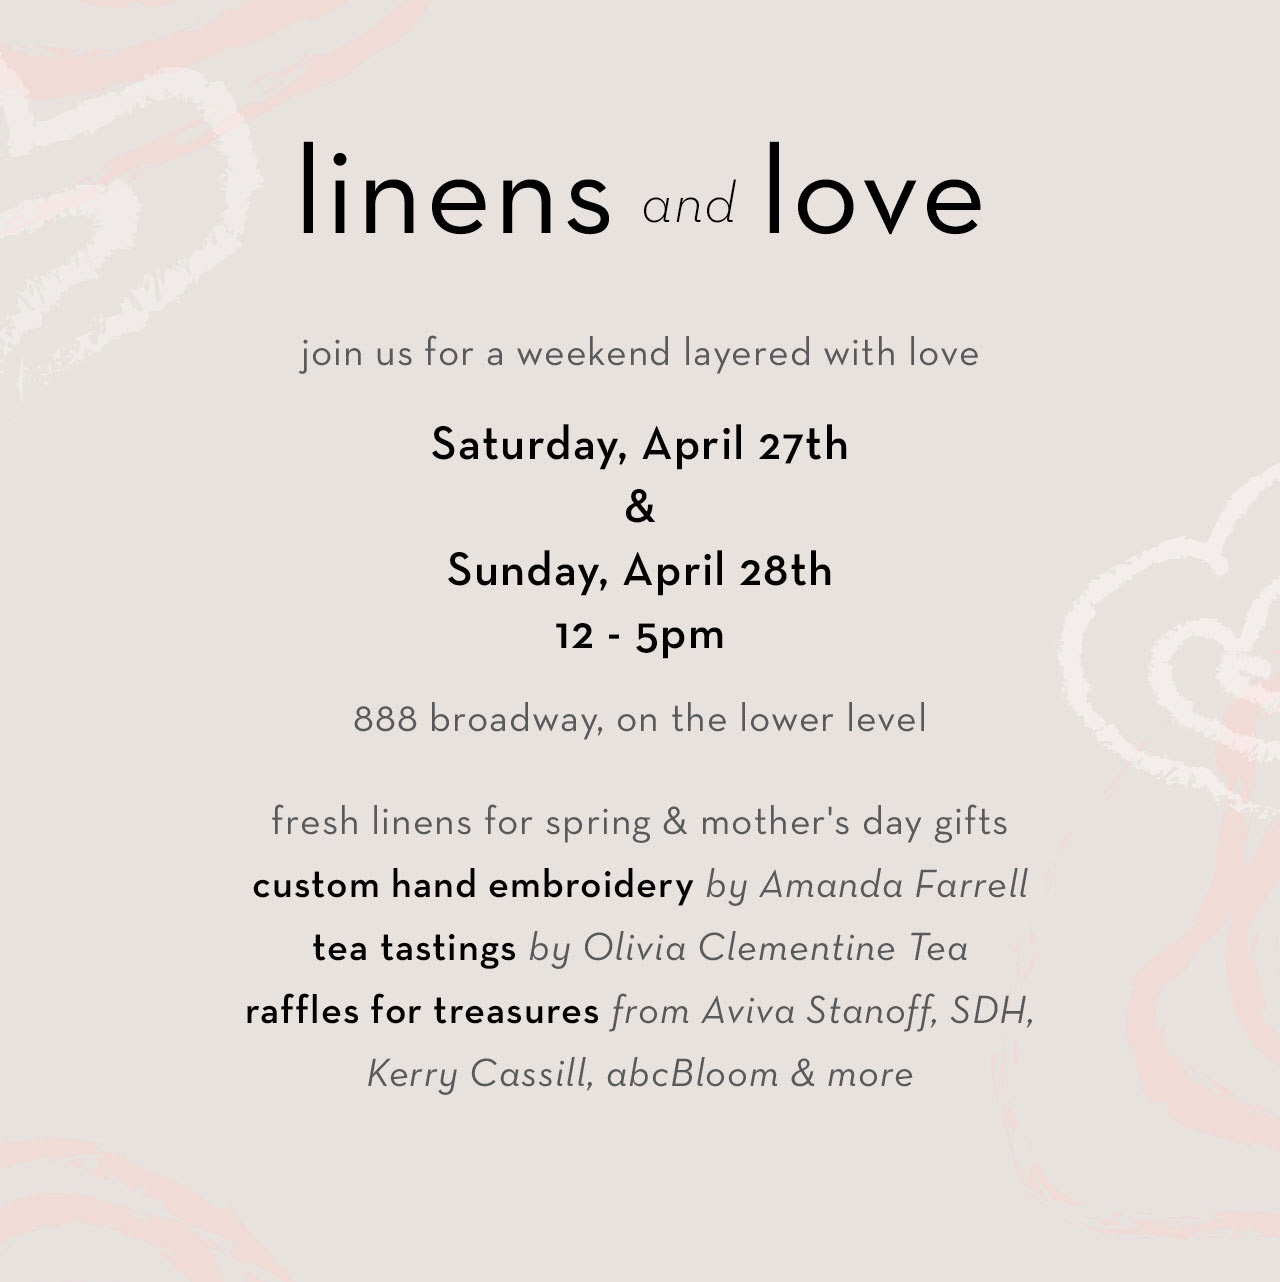 linens and love.jpg